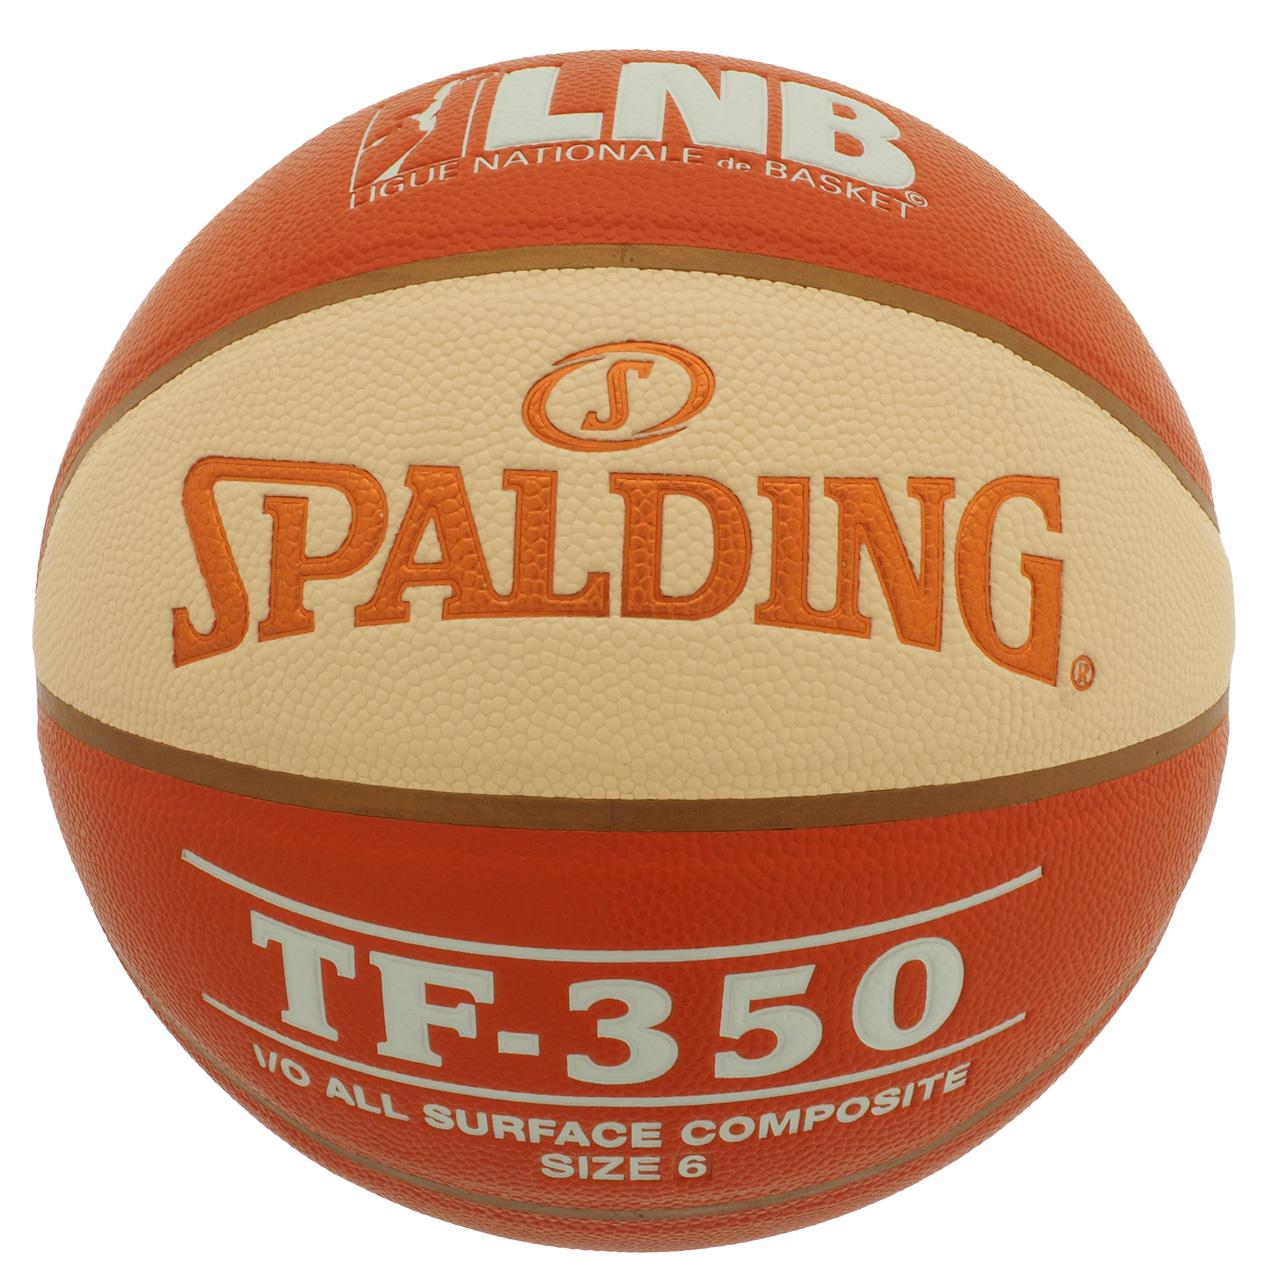 Ball-Of-Basketball-Spalding-Tf350-t6-Ball-Orange-50023-New